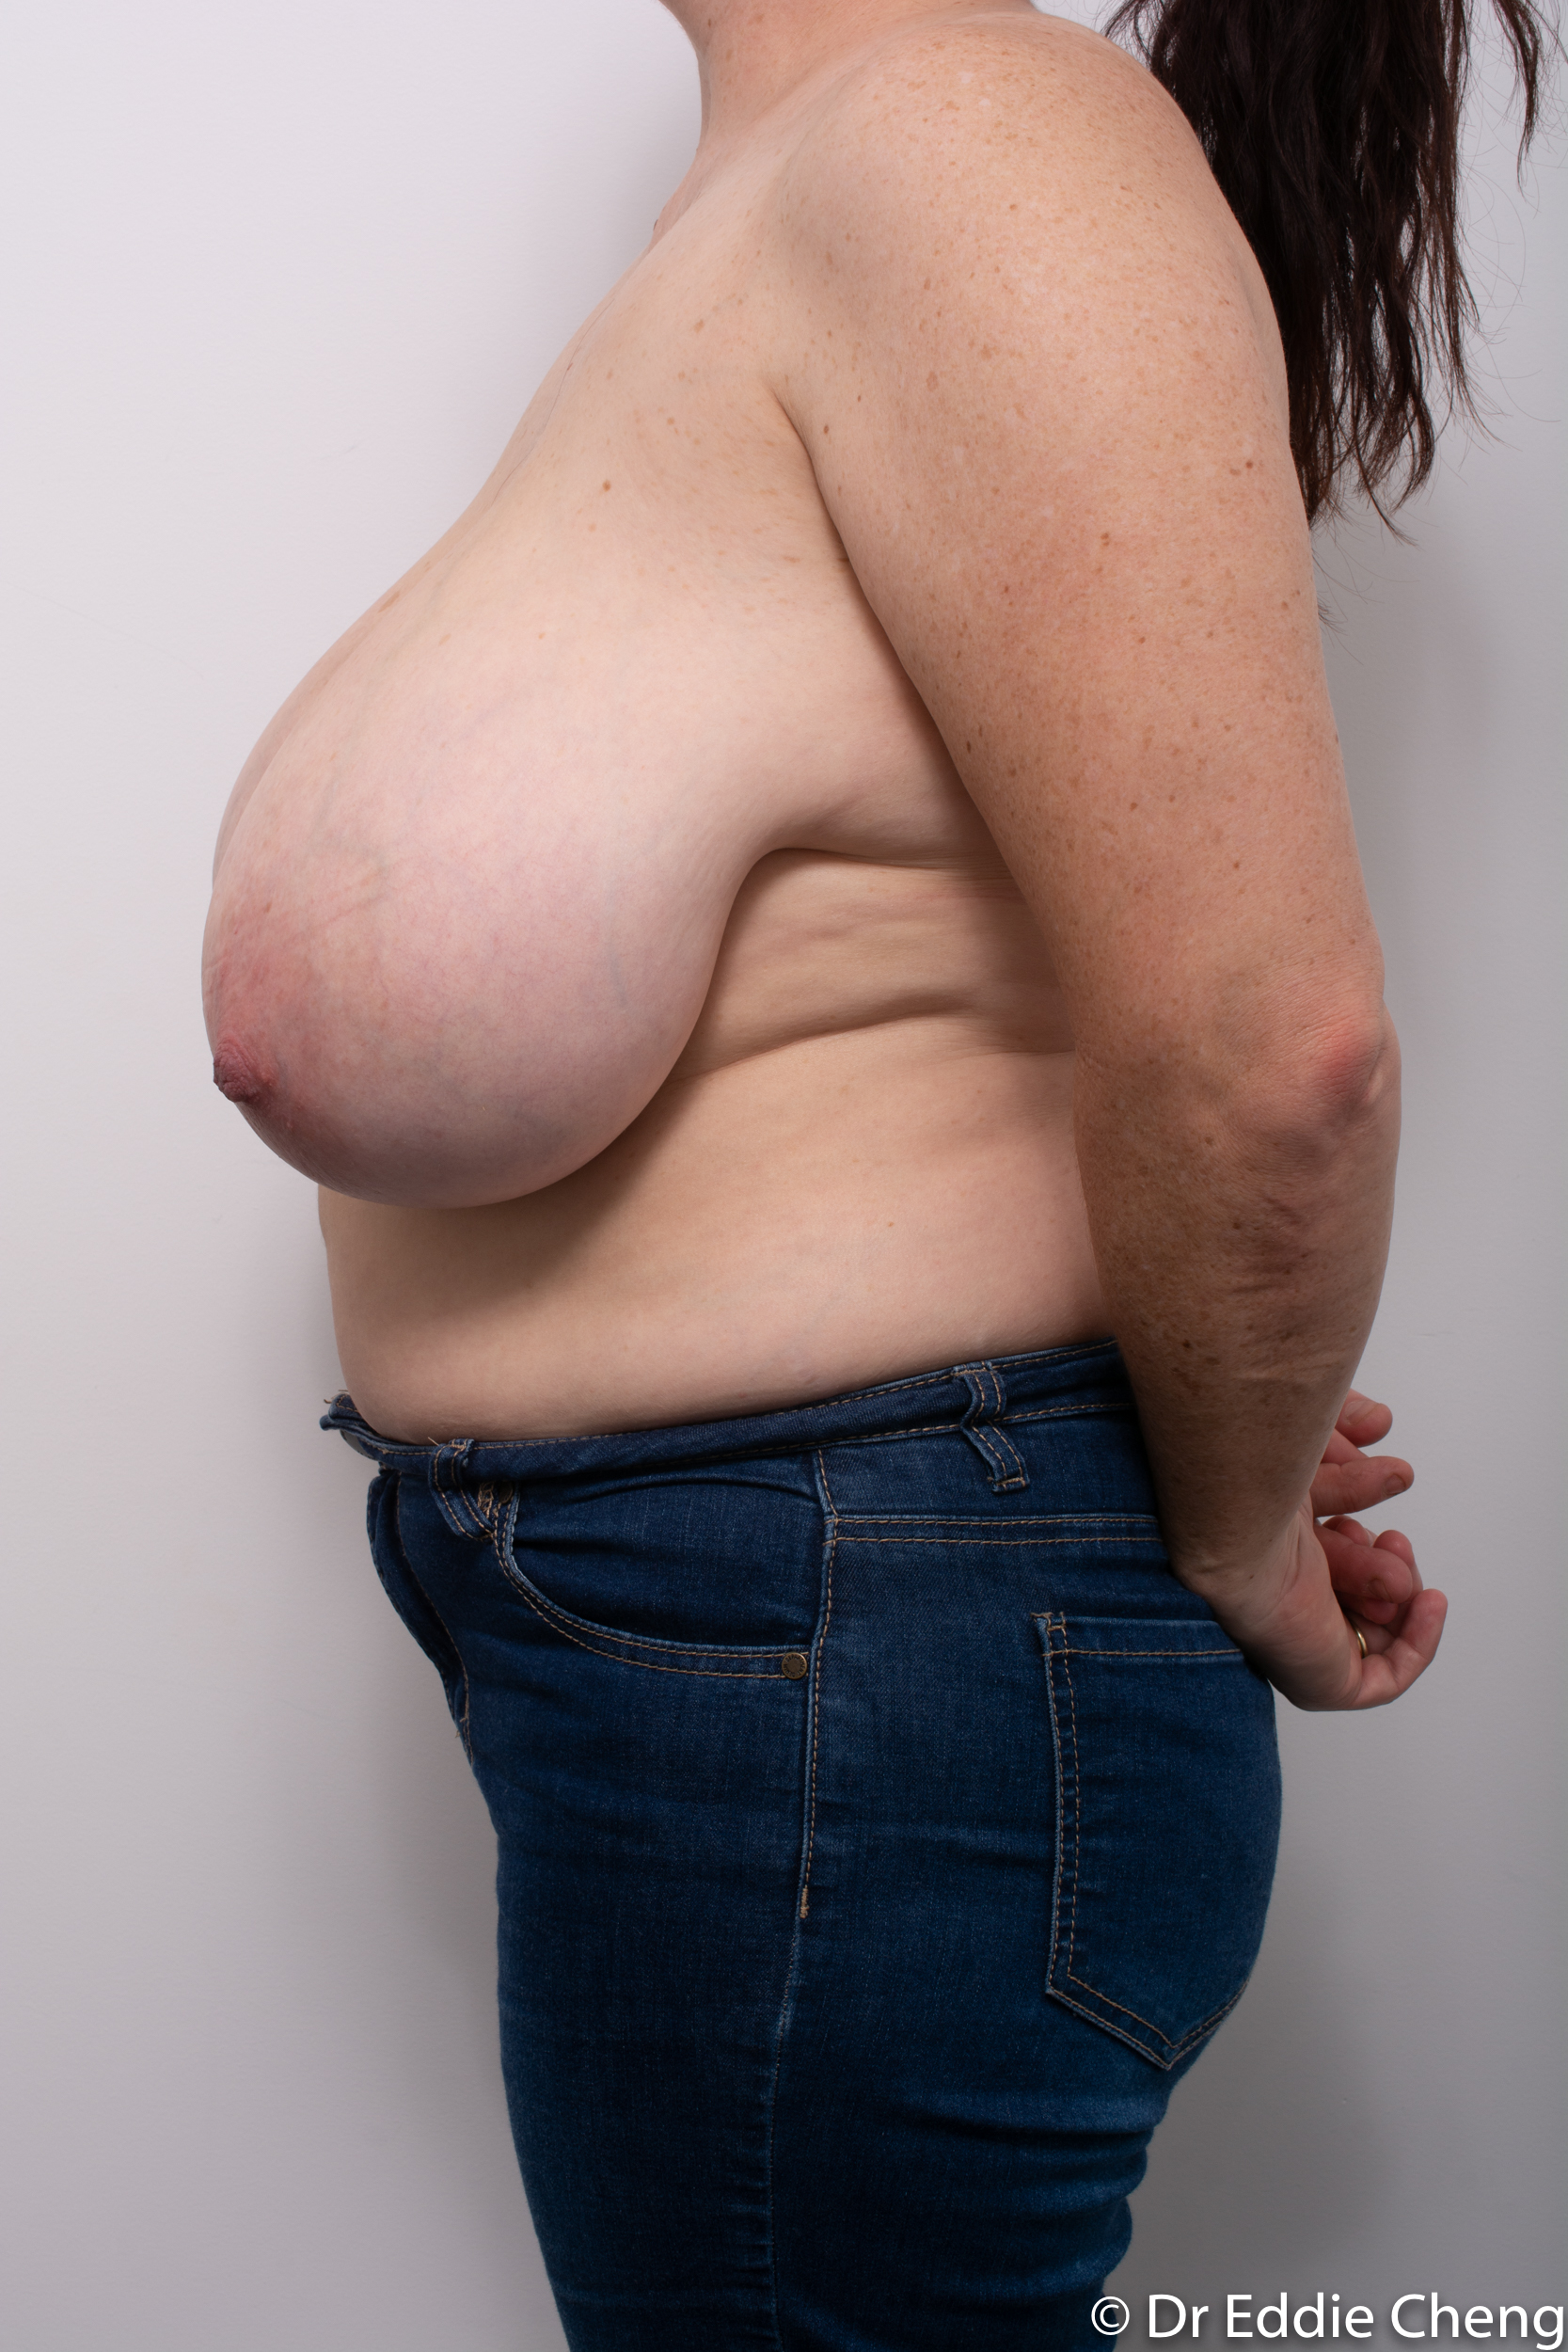 breast reduction dr eddie cheng brisbane surgeon pre and post operative images-5